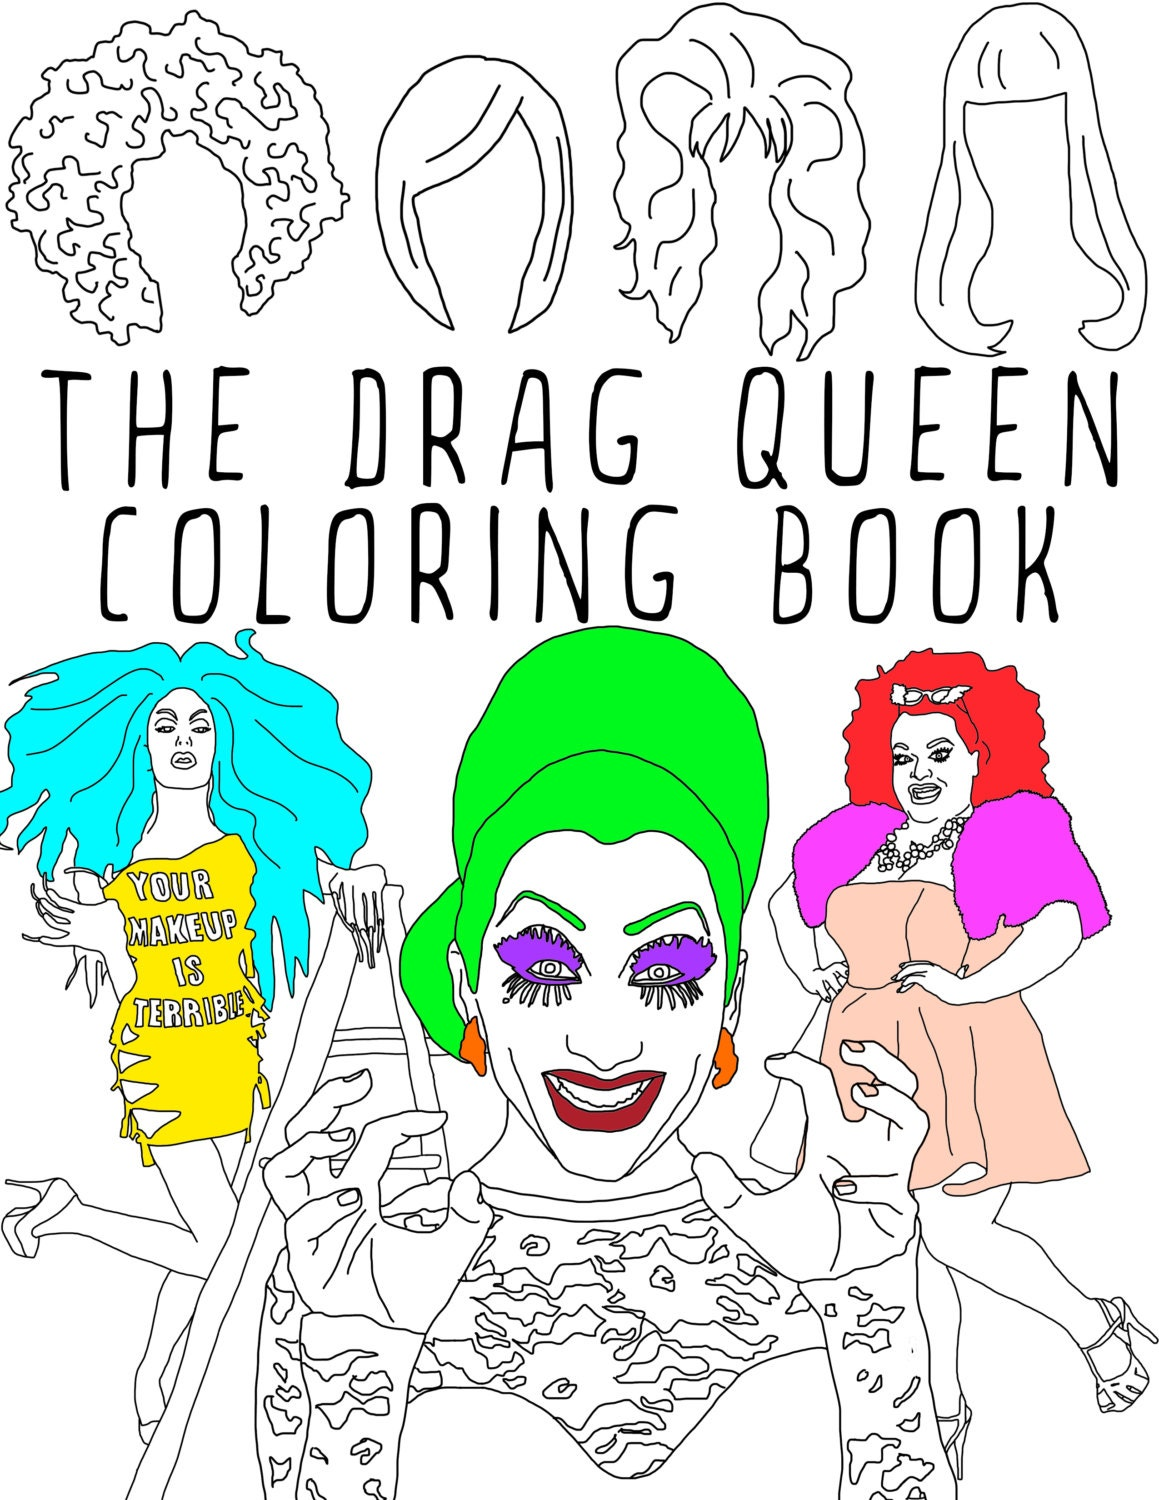 Lgbt Quotes Coloring Pages - Worksheet & Coloring Pages